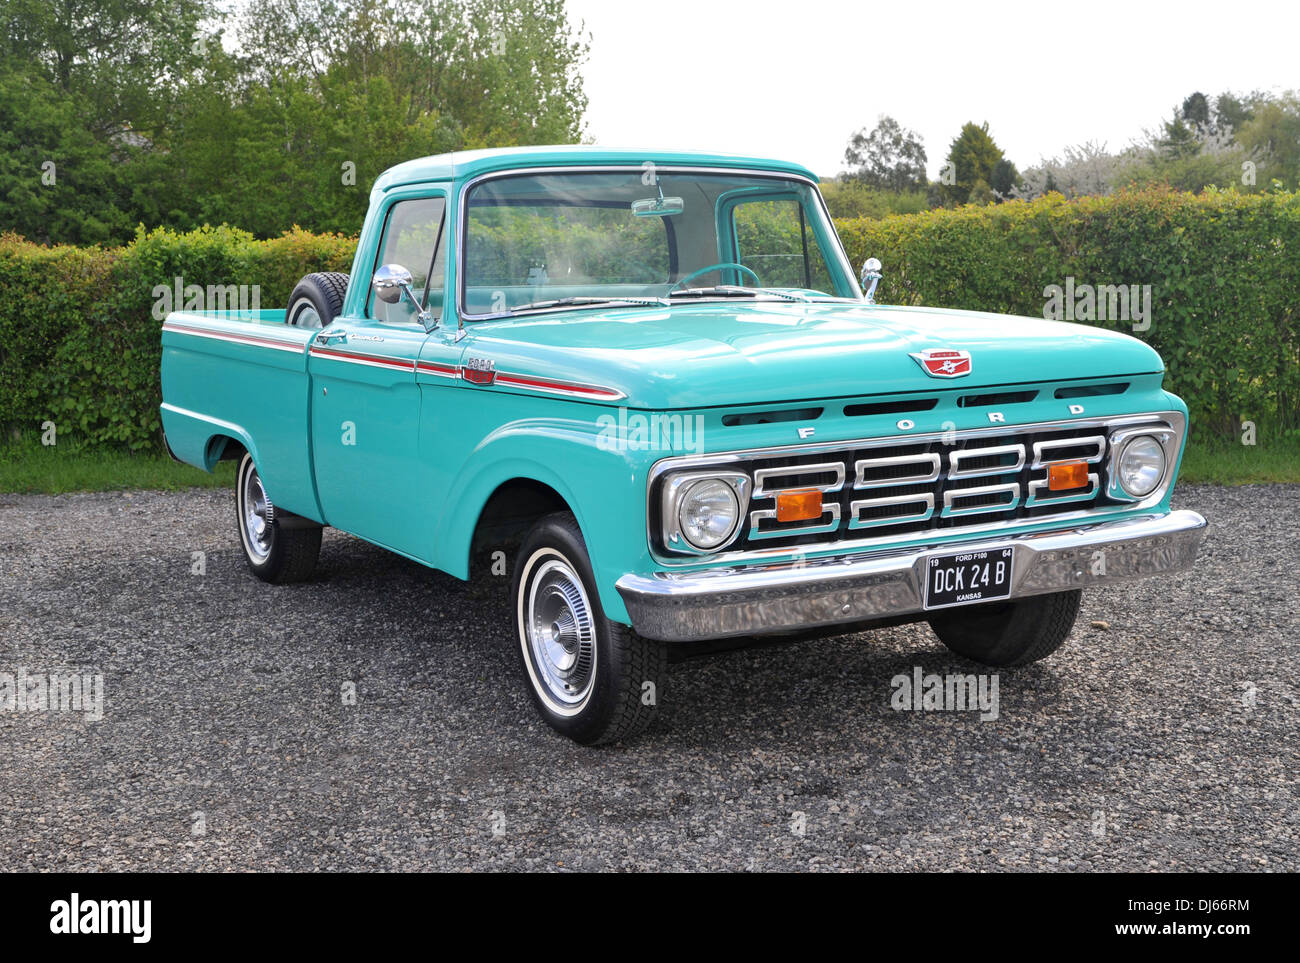 1964 ford f100 classic american pick up truck stock photo royalty free image 62831992 alamy. Black Bedroom Furniture Sets. Home Design Ideas